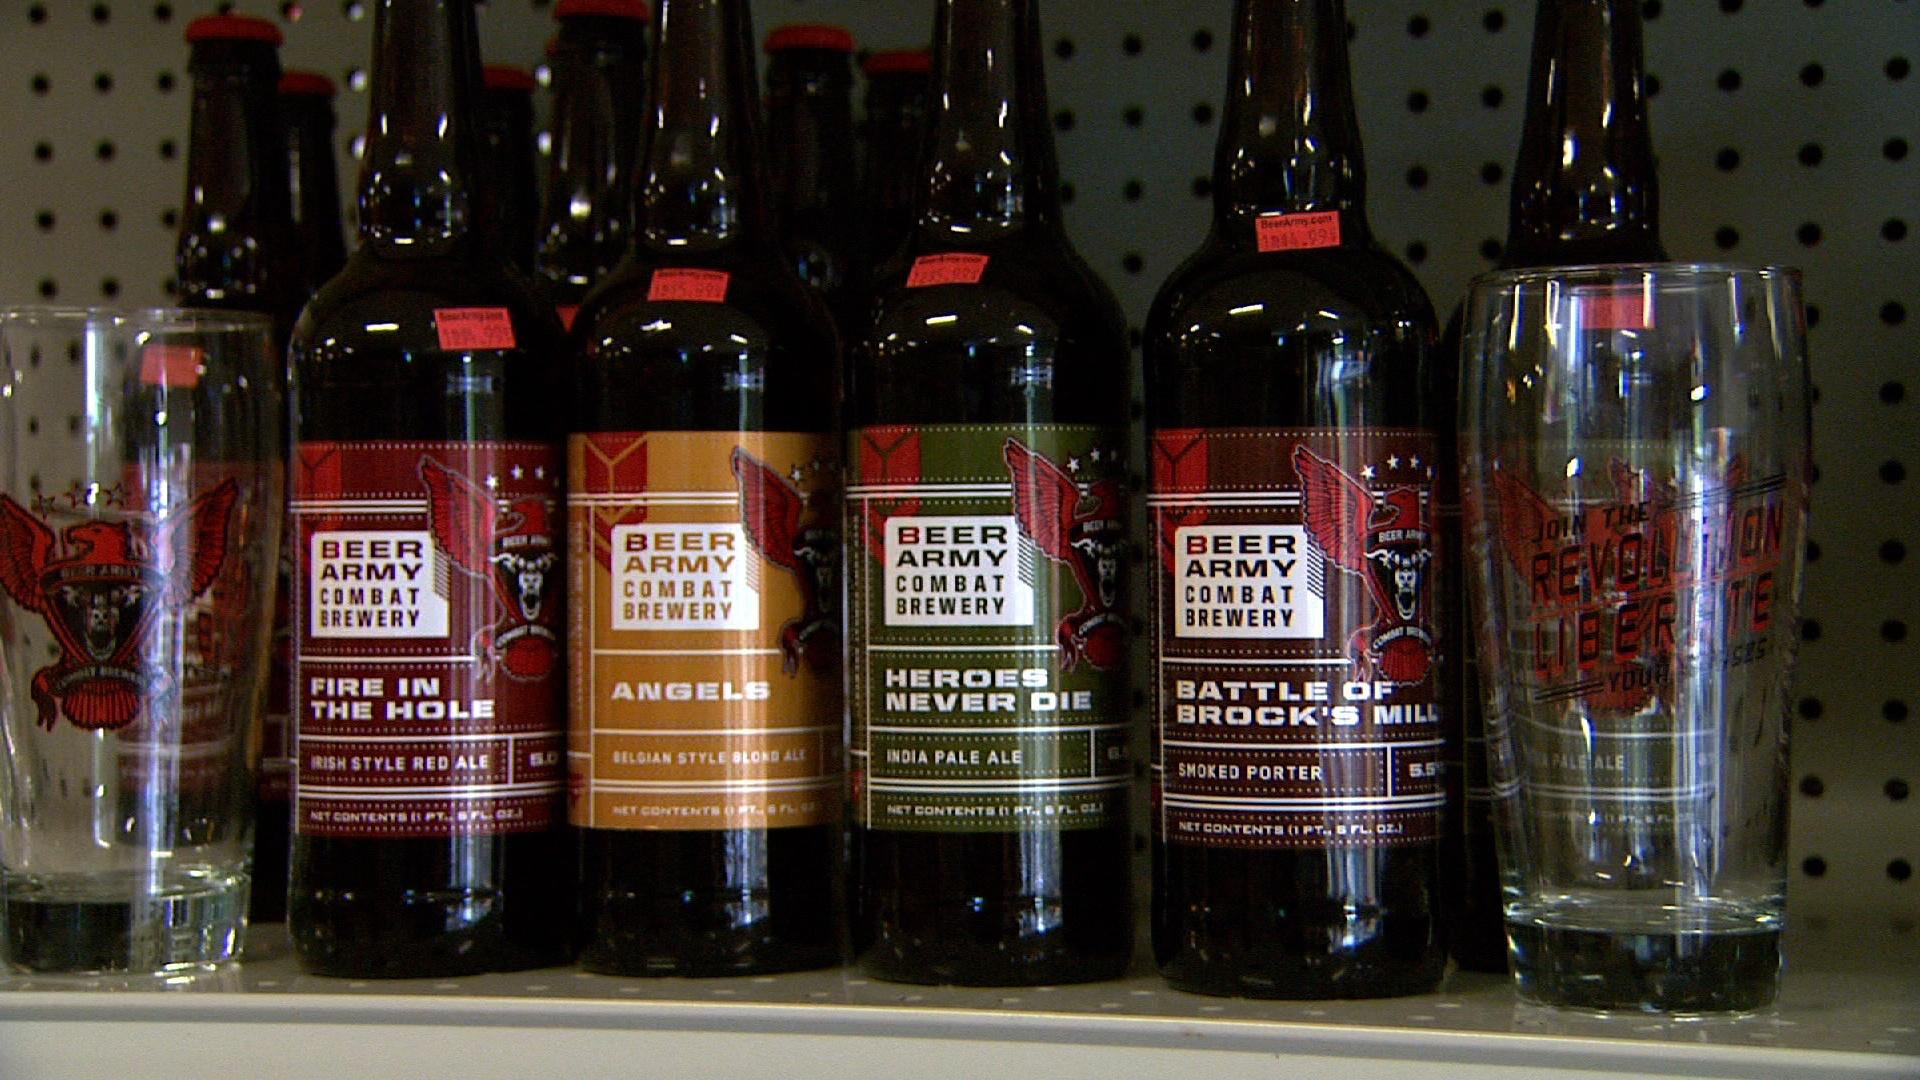 Beer Army Combat Brewery image